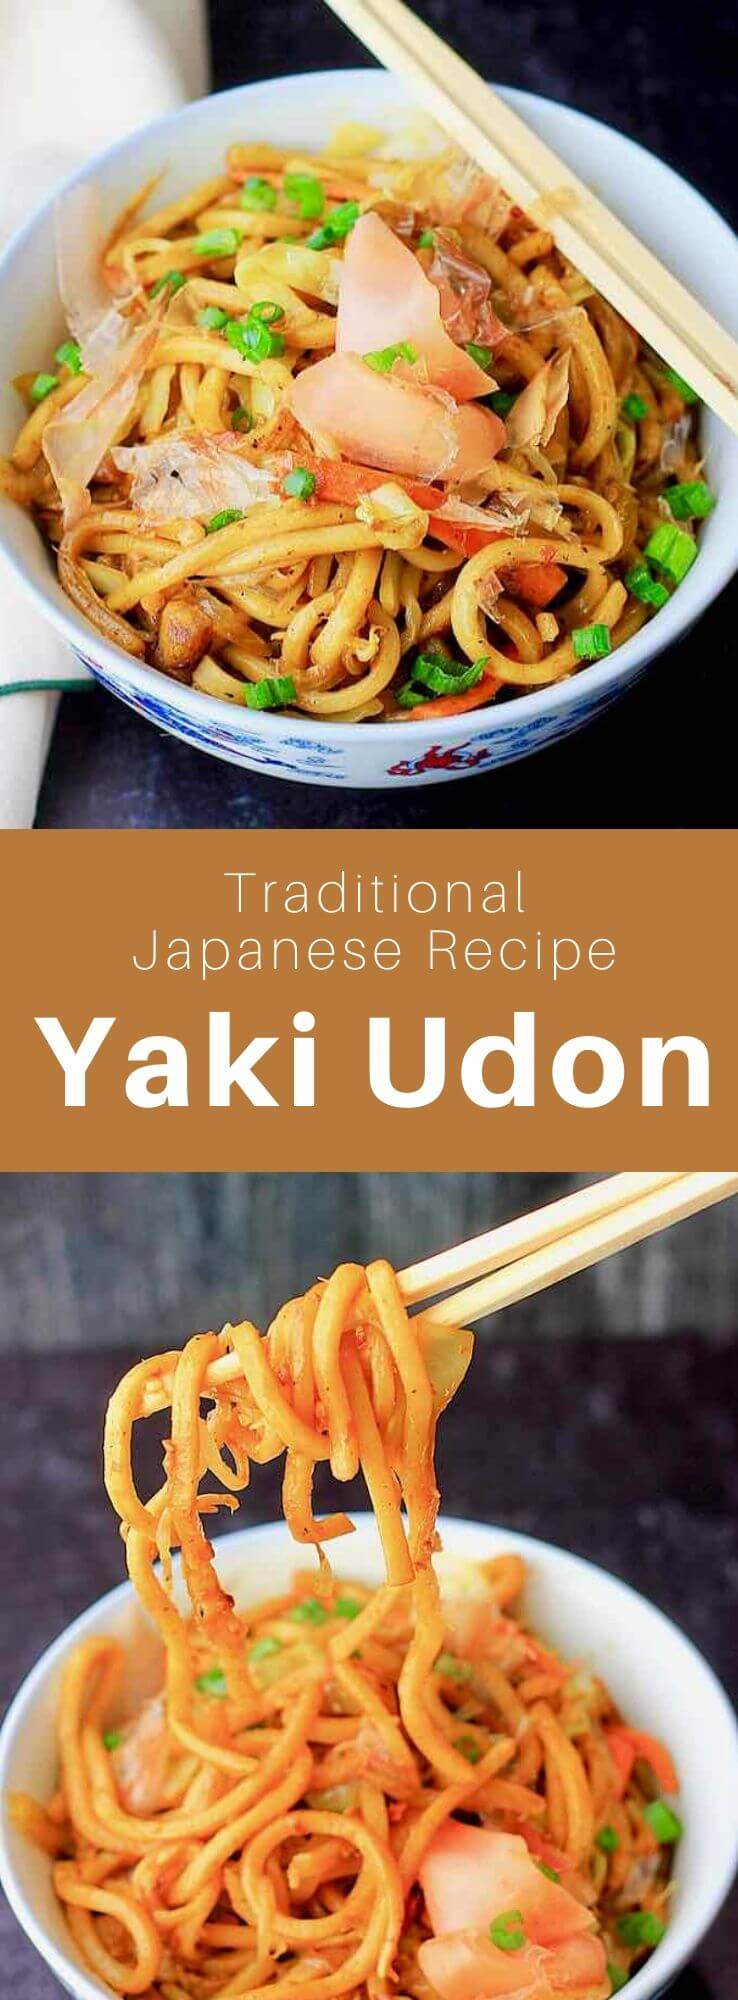 Yaki udon (焼きうどん or 焼き饂飩) is a Japanese stir-fry dish composed of udon (noodles), prepared with meat and vegetables. #Japan #Japanese #JapaneseFood #JapaneseCuisine #JapaneseRecipe #AsianCuisine #AsianFood #AsianCuisine #WorldCuisine #196flavors